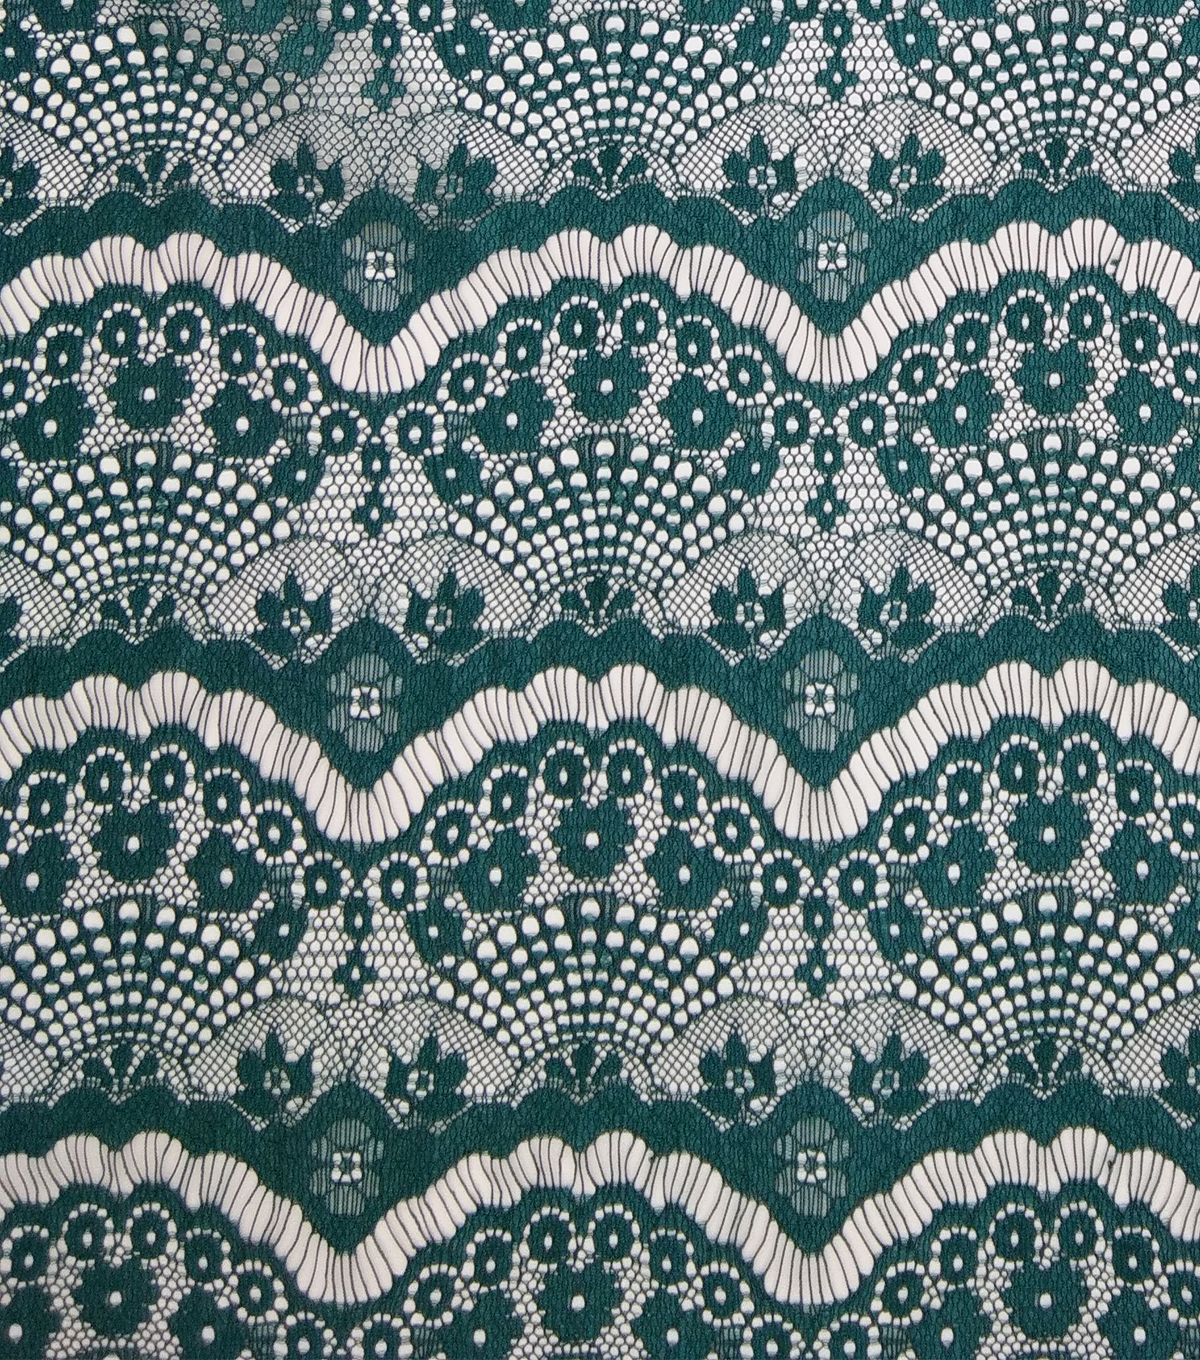 Casa Collection Eyelash Lace Fabric 56\u0022, Botanical Garden